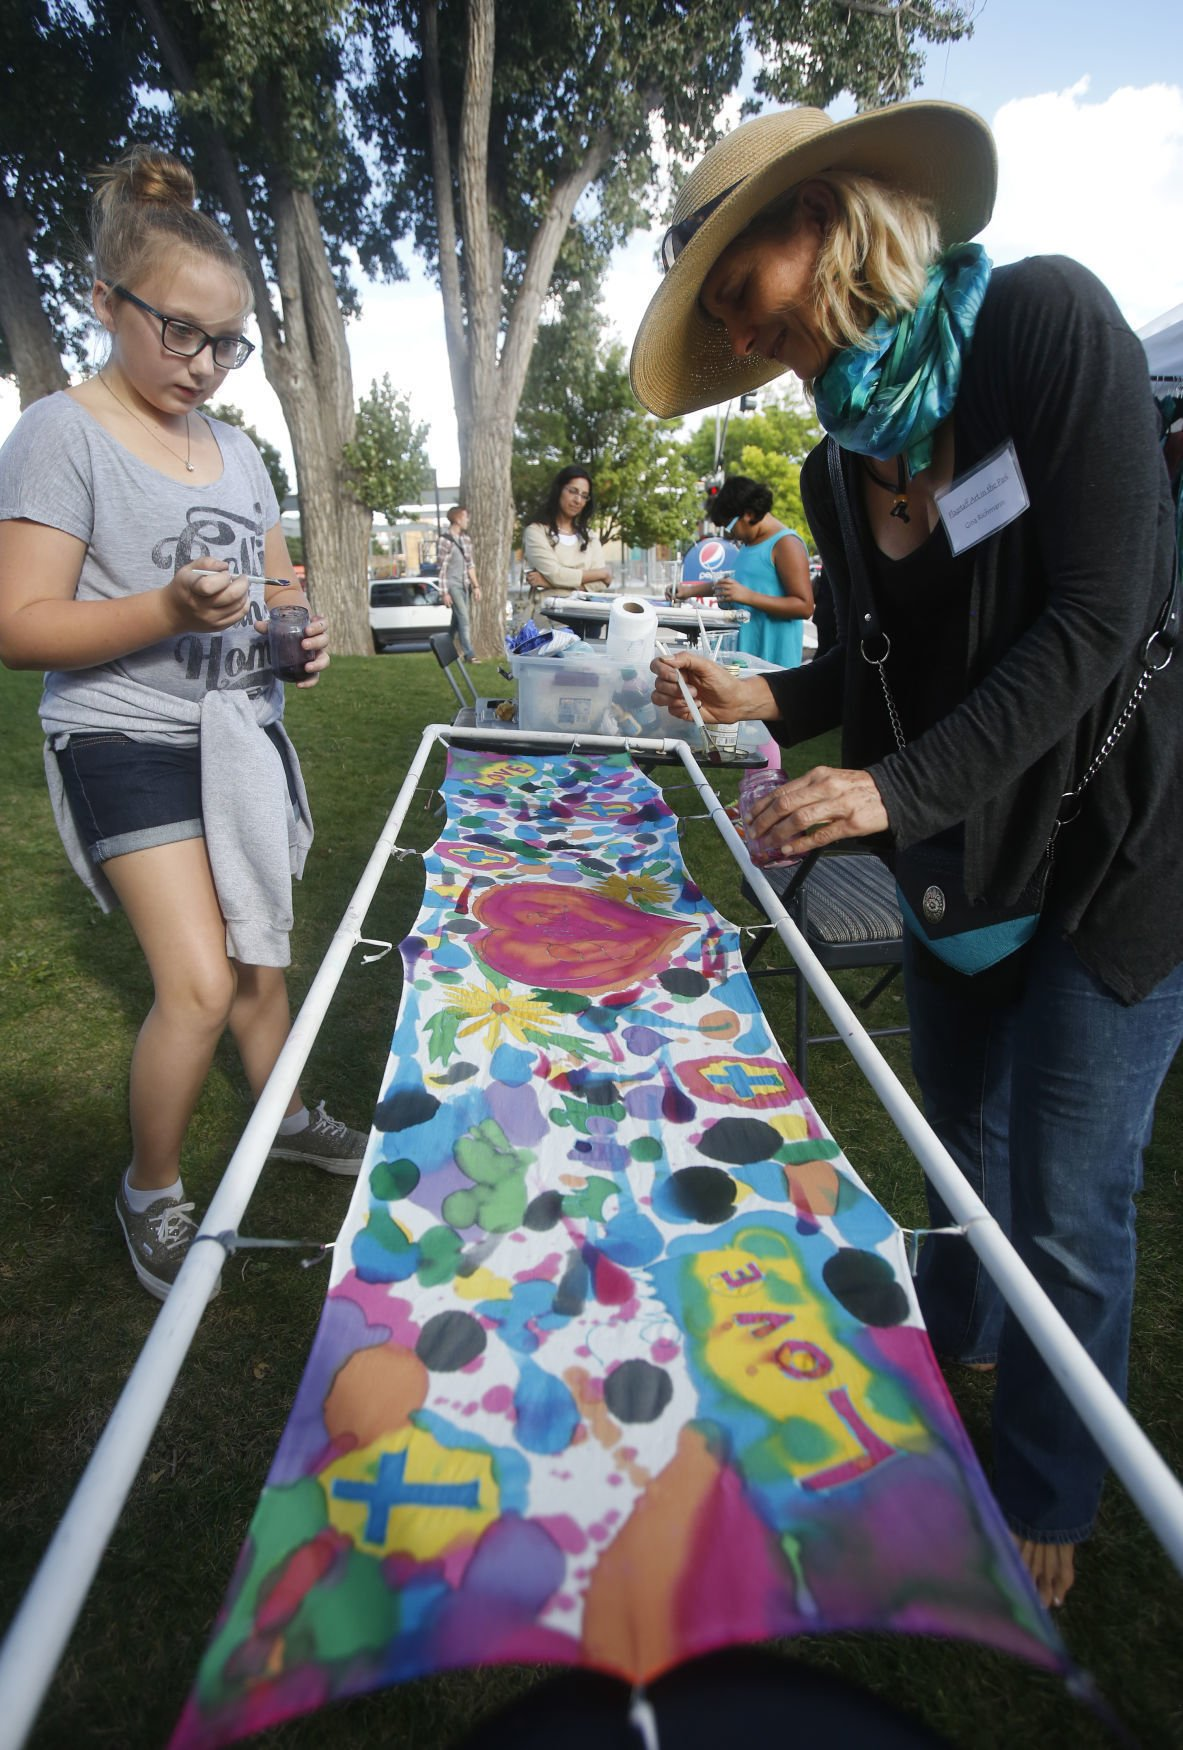 Artist Gina Richman, right, paints on a large piece of silk with Kenna Moore, 12, left, during Art in the Park Saturday afternoon at Wheeler Park. 2016. taylor.jpg